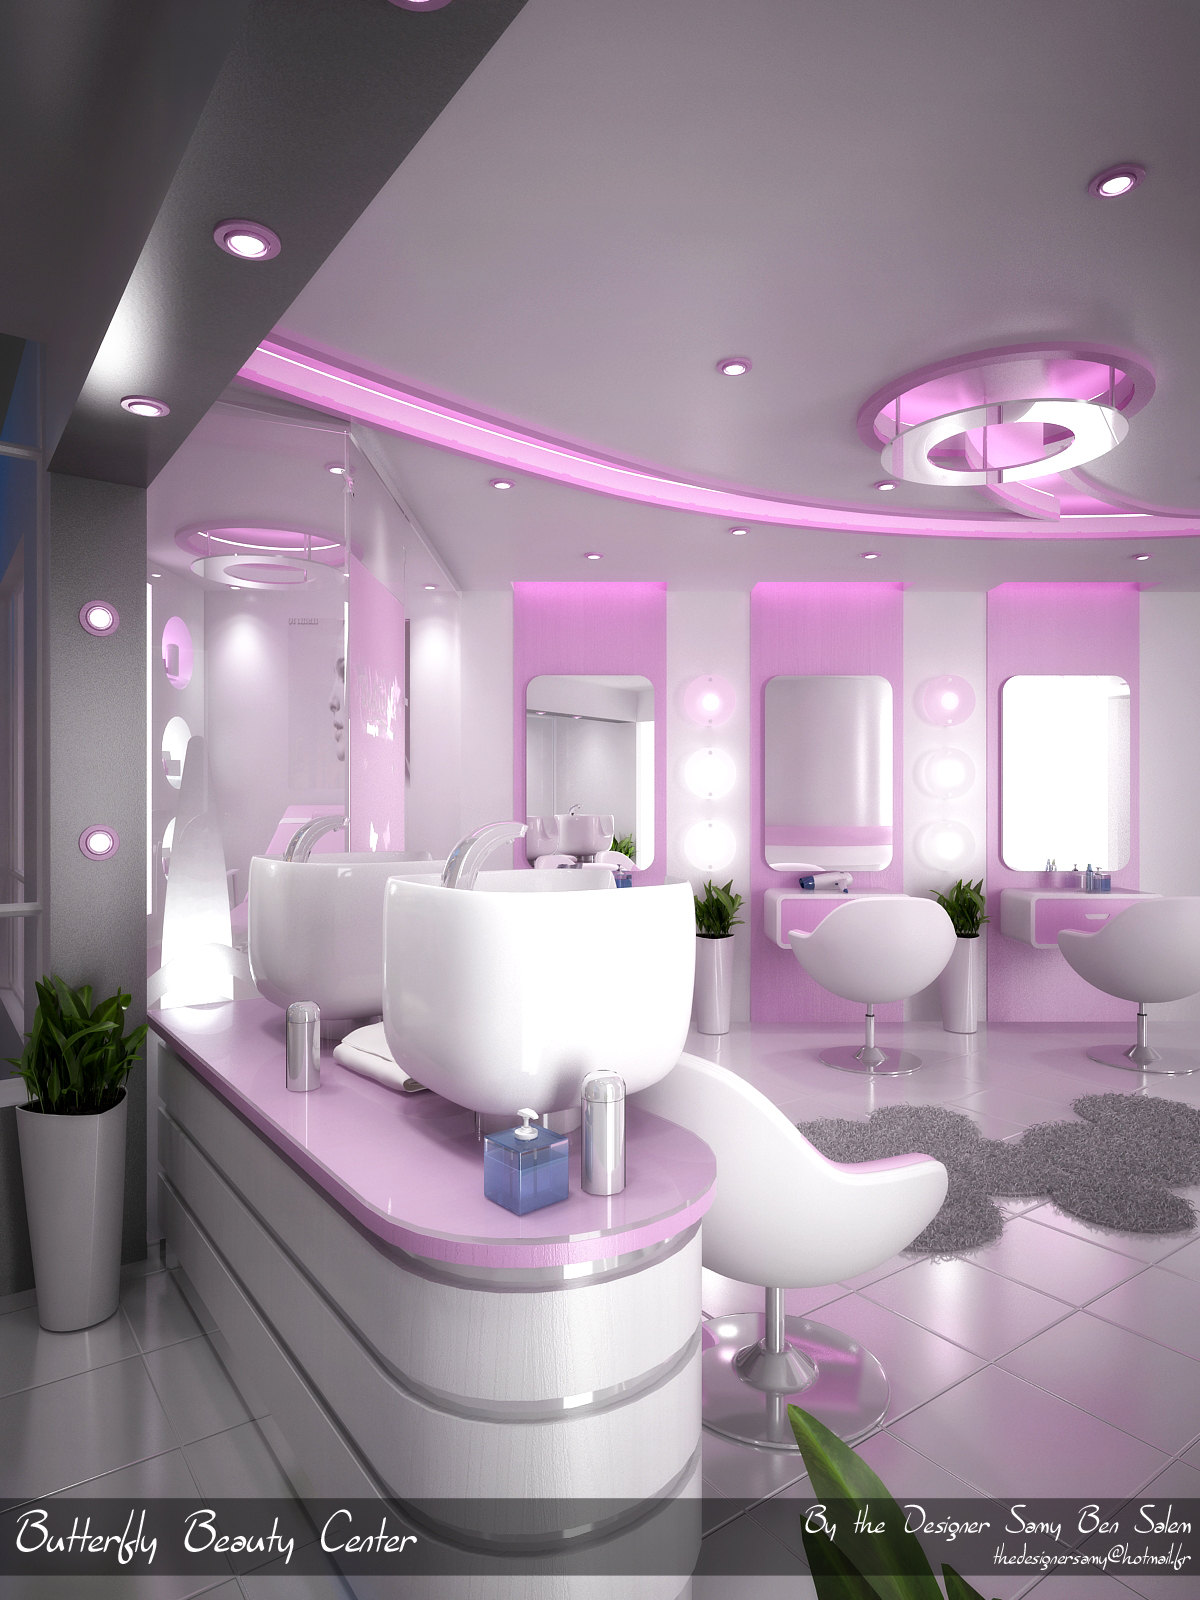 Interior Design Job Description By Butterfly Beauty Center Samy Ben Salem At Coroflot Com